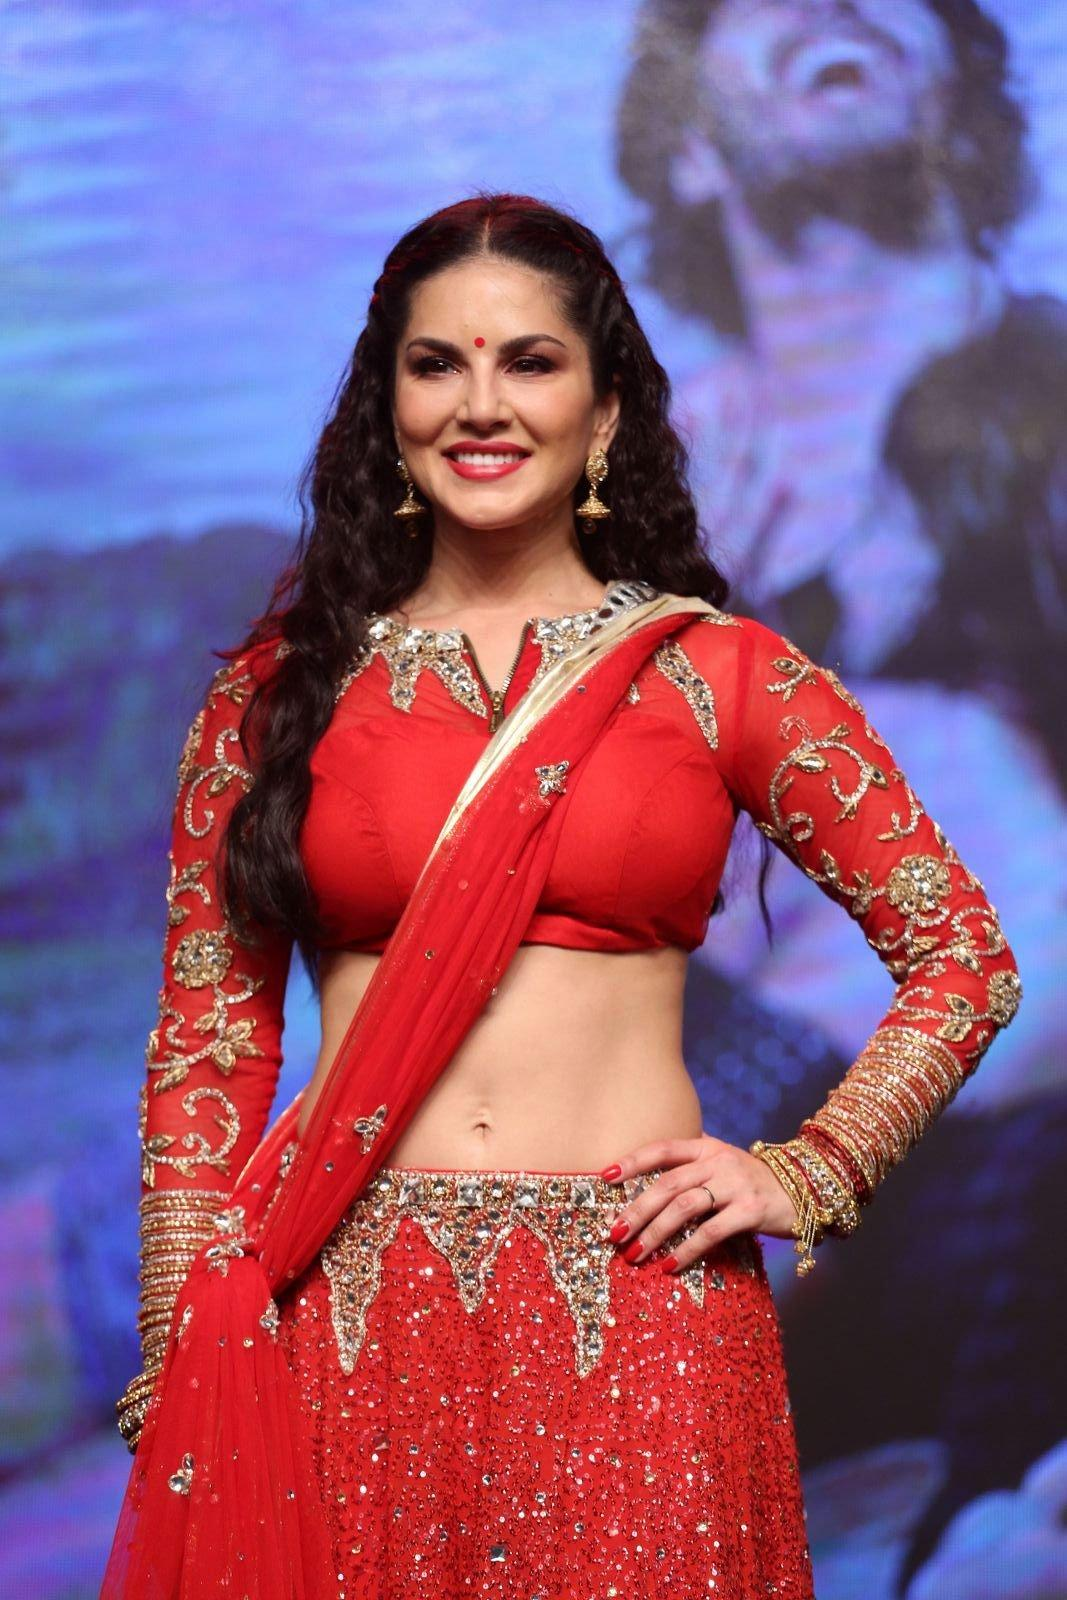 Sunny Leone Looks Super Sexy In A Red Revealing Dress At -8949